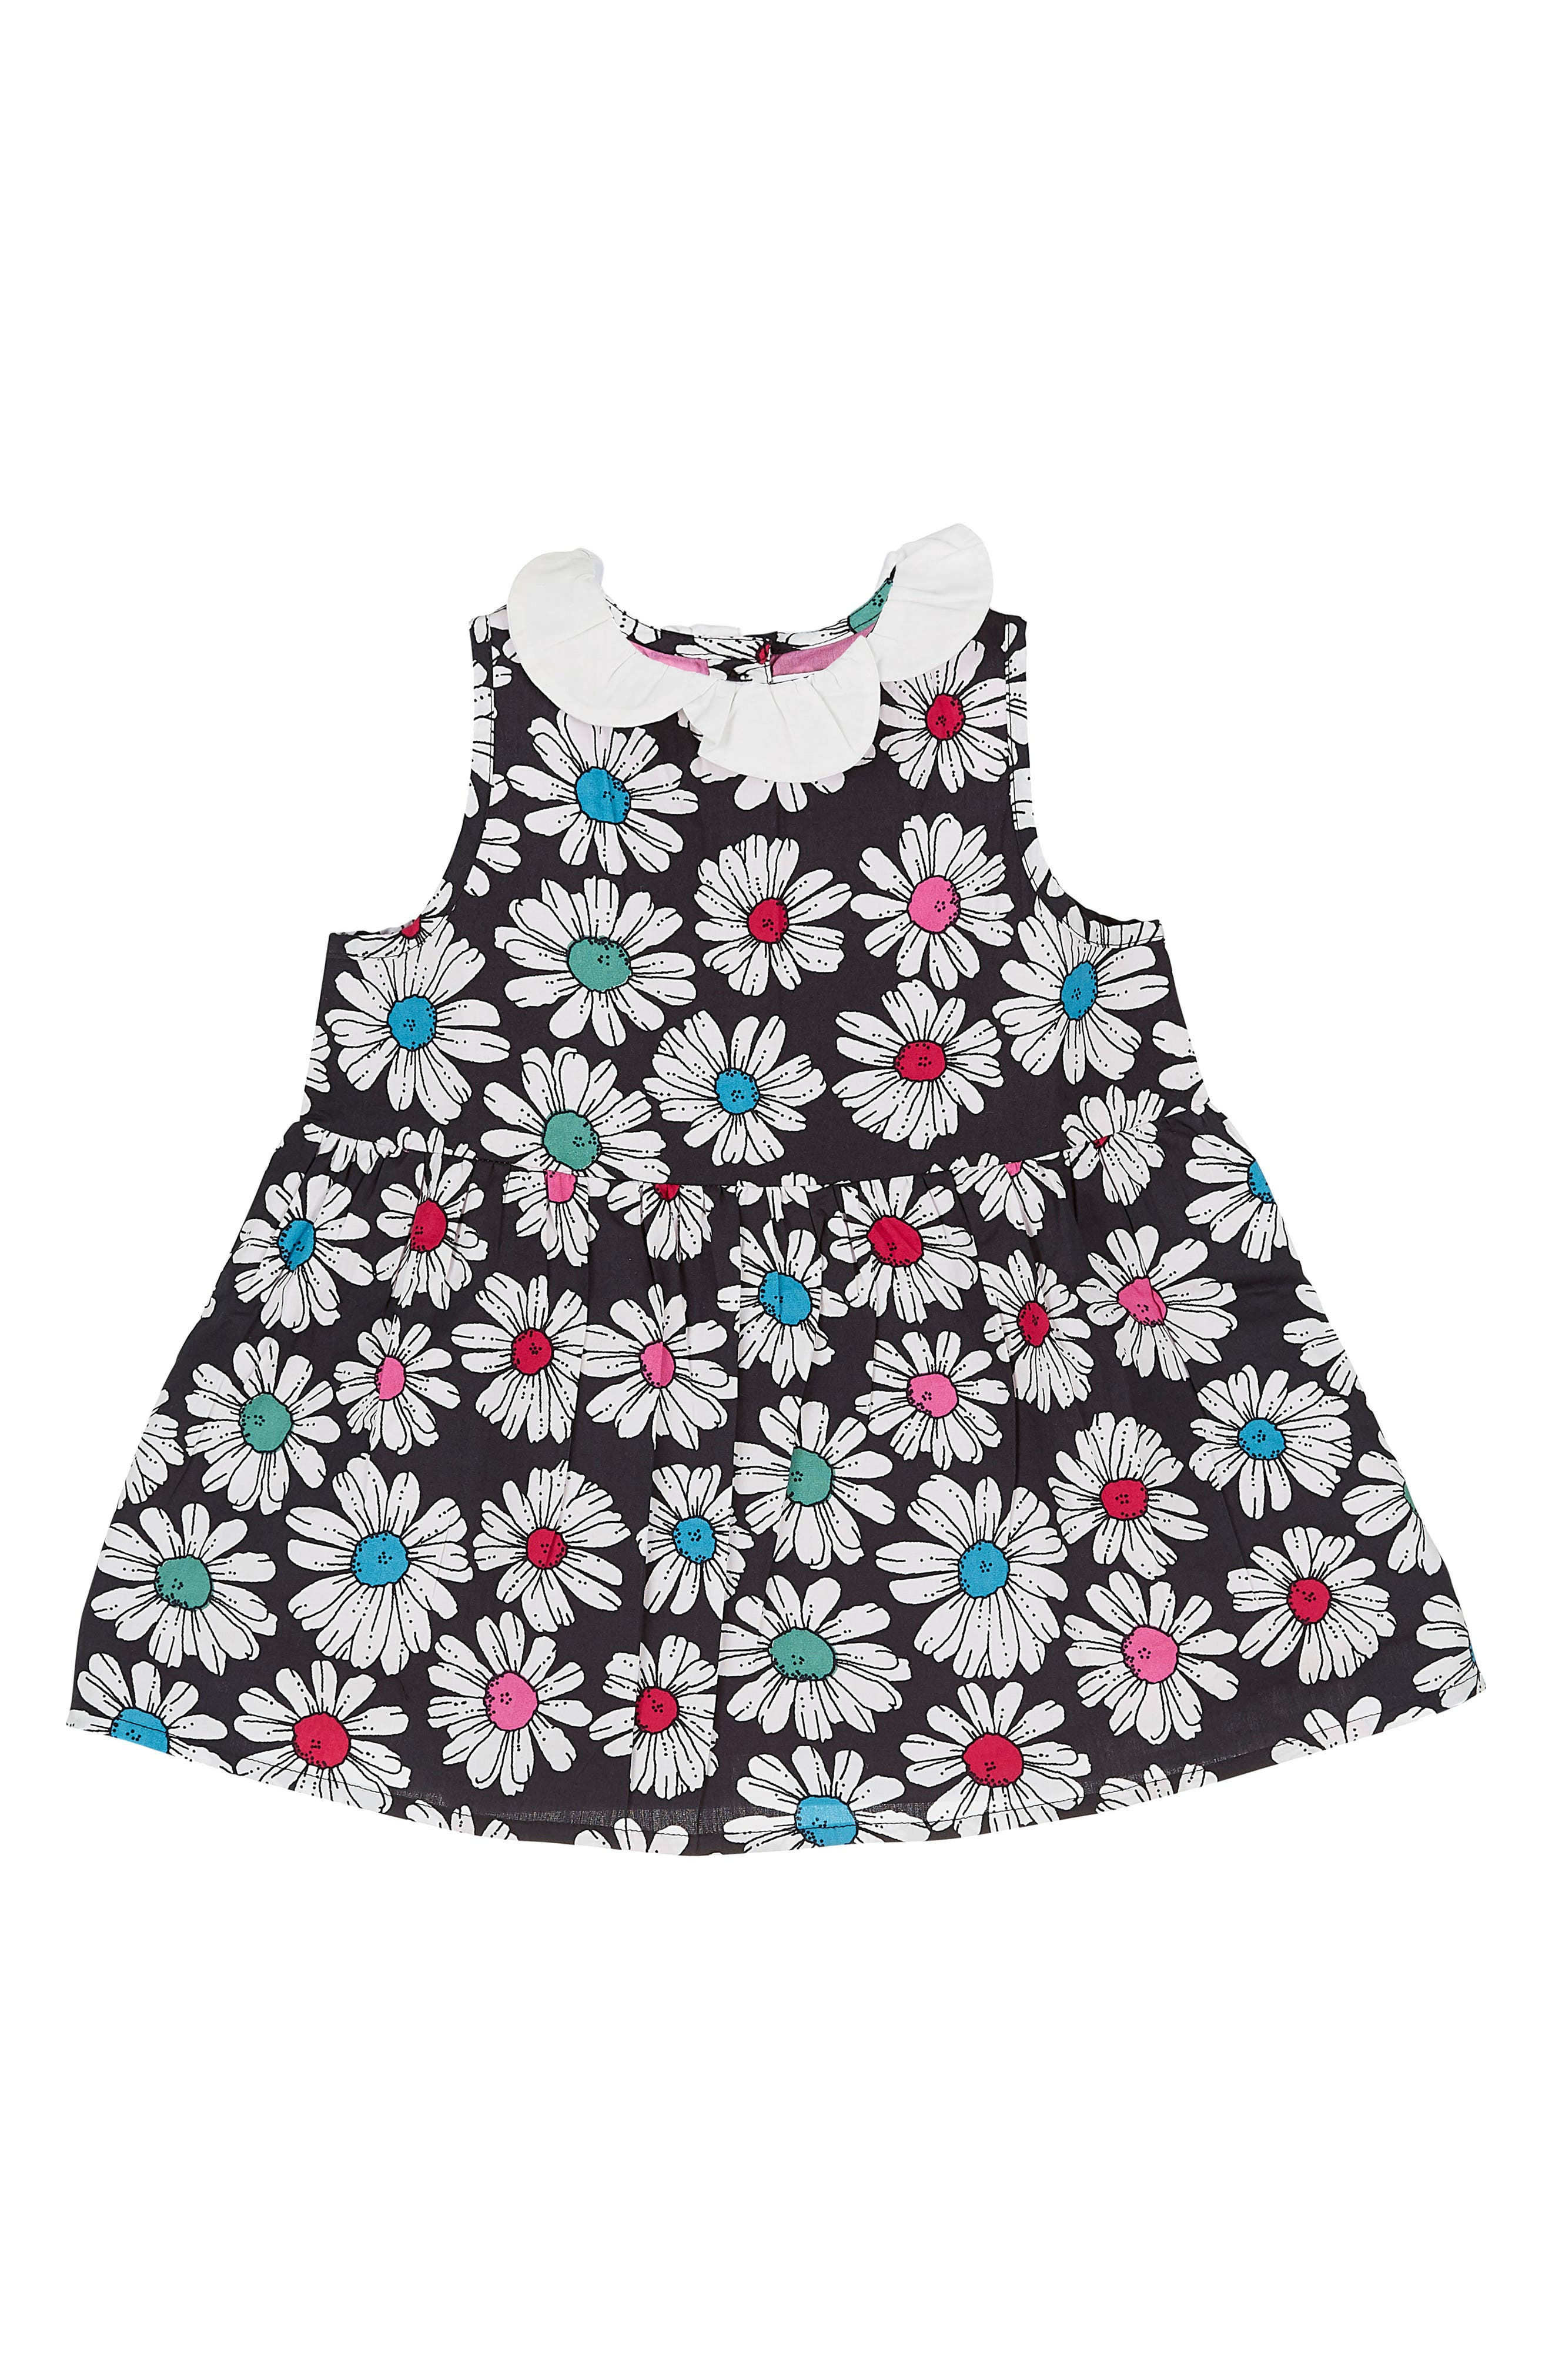 Floral Print Dress,                             Alternate thumbnail 2, color,                             001